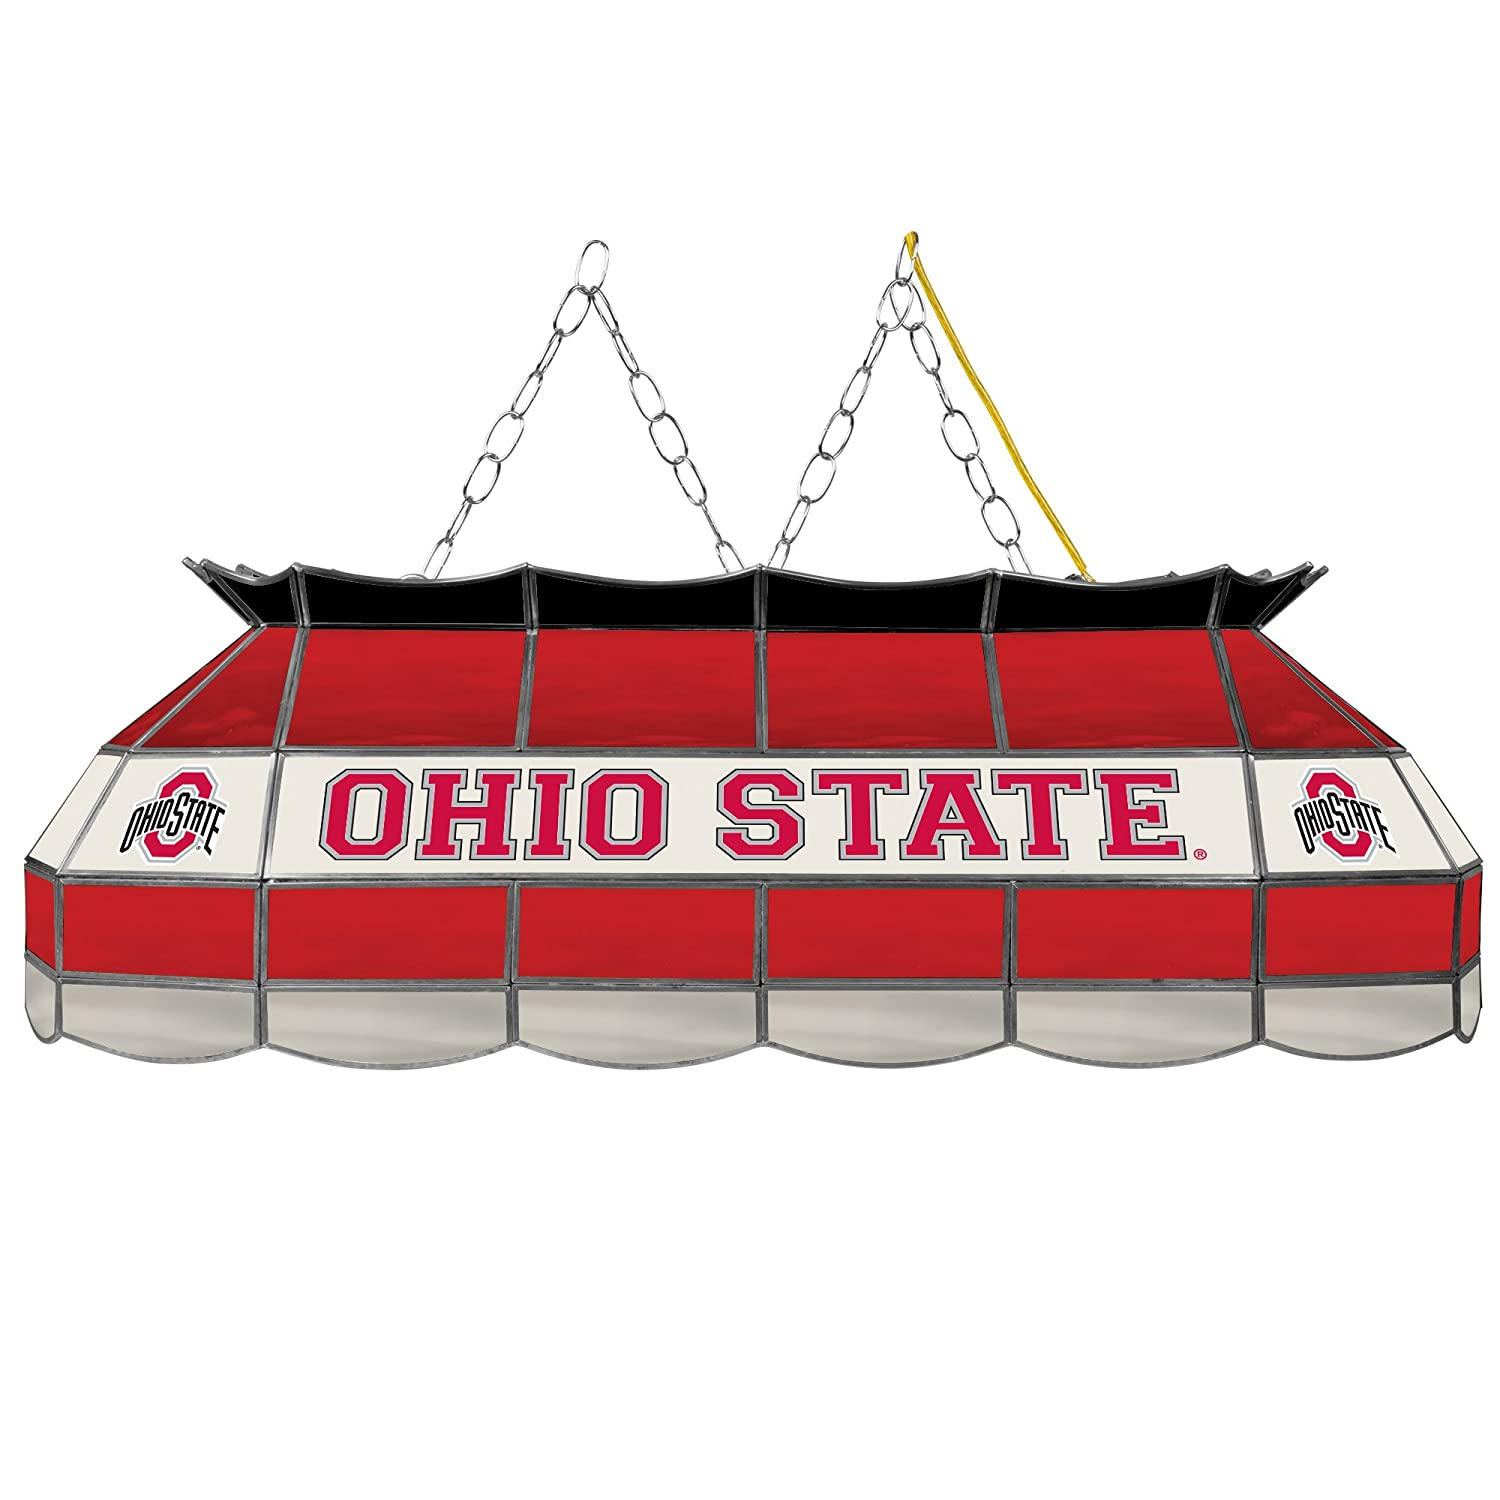 Amazon ncaa ohio state university tiffany gameroom lamp 40 amazon ncaa ohio state university tiffany gameroom lamp 40 sports fan billiard lighting sports outdoors greentooth Choice Image